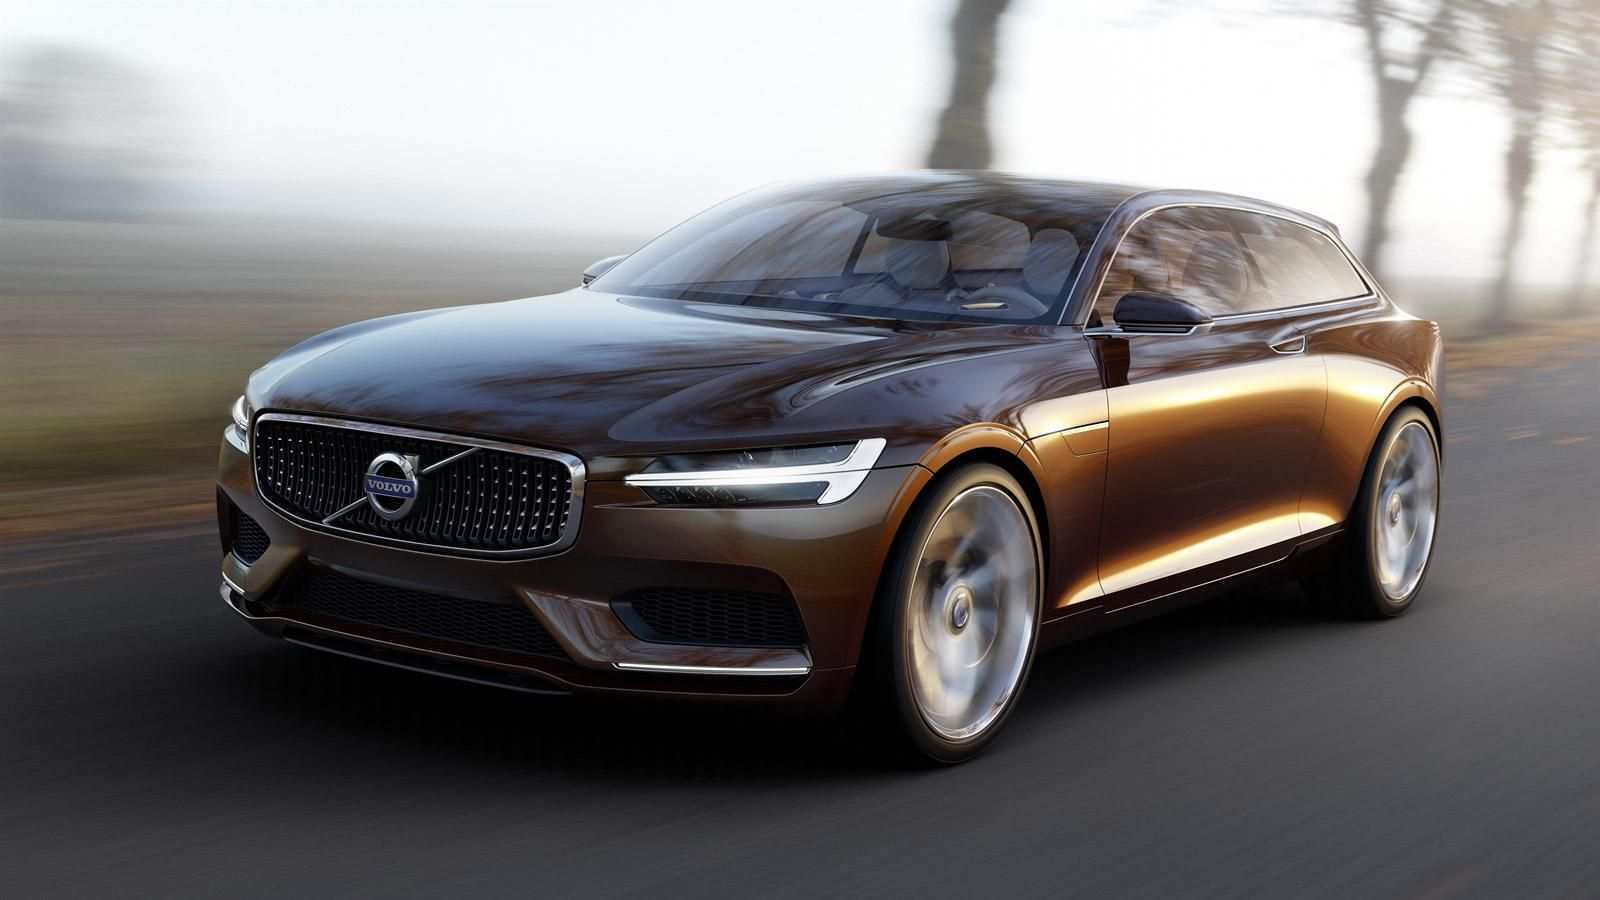 46 Concept of Volvo Car Open 2020 Specs with Volvo Car Open 2020